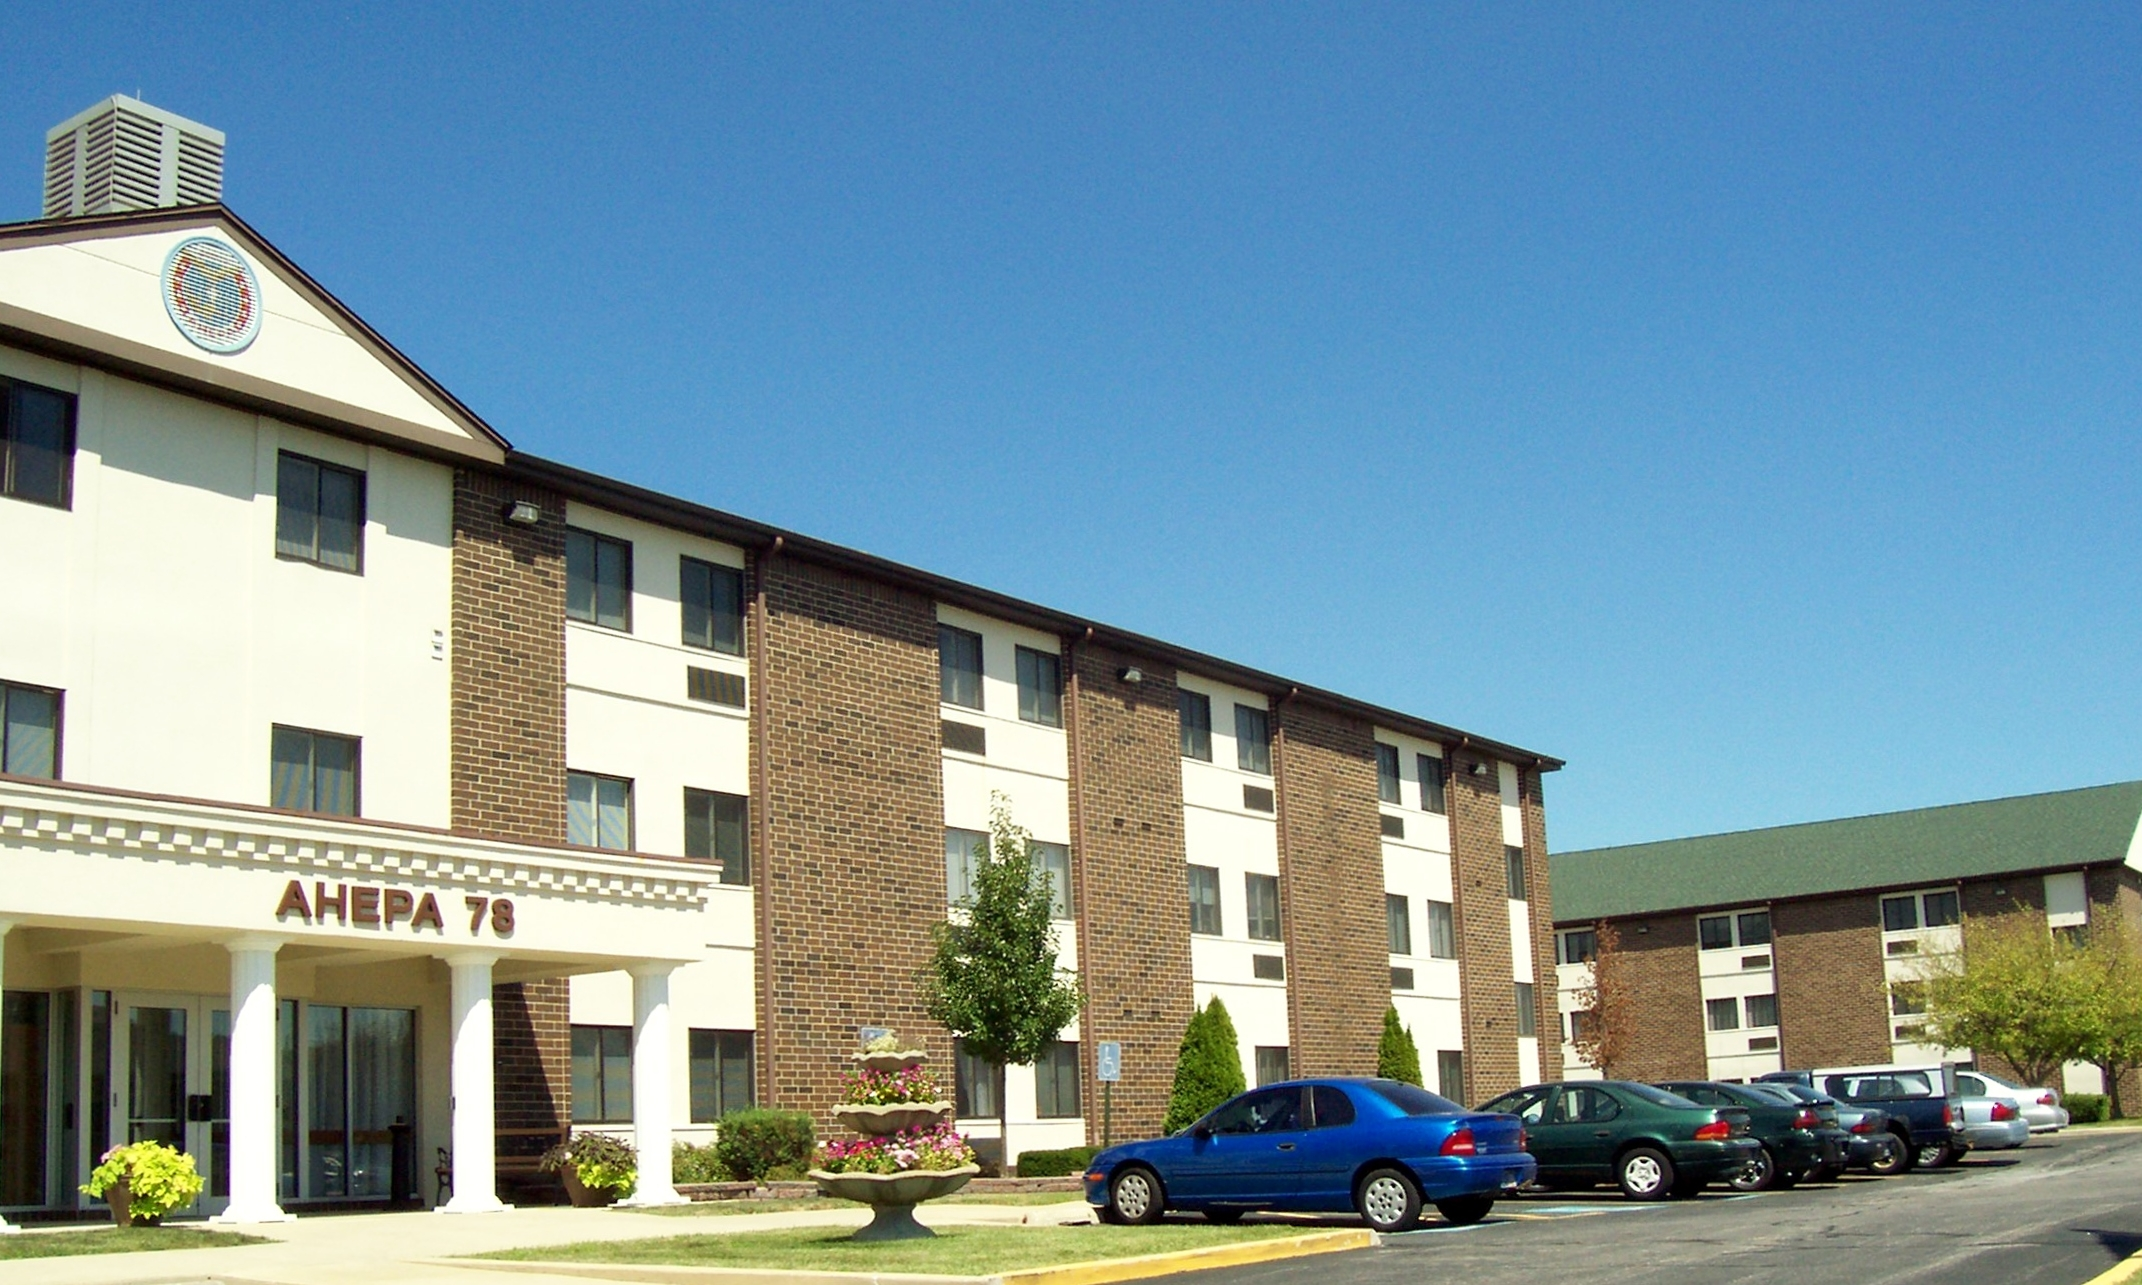 AHEPA 78 II Senior Apartments - 2080 W. 79th PlaceMerrillville, IN 46410(219) 791-0708TTY: (800) 325-2223 or 711 (English)TTY: (800) 743-4869 or 711 (Español)info@ahepahousing.org